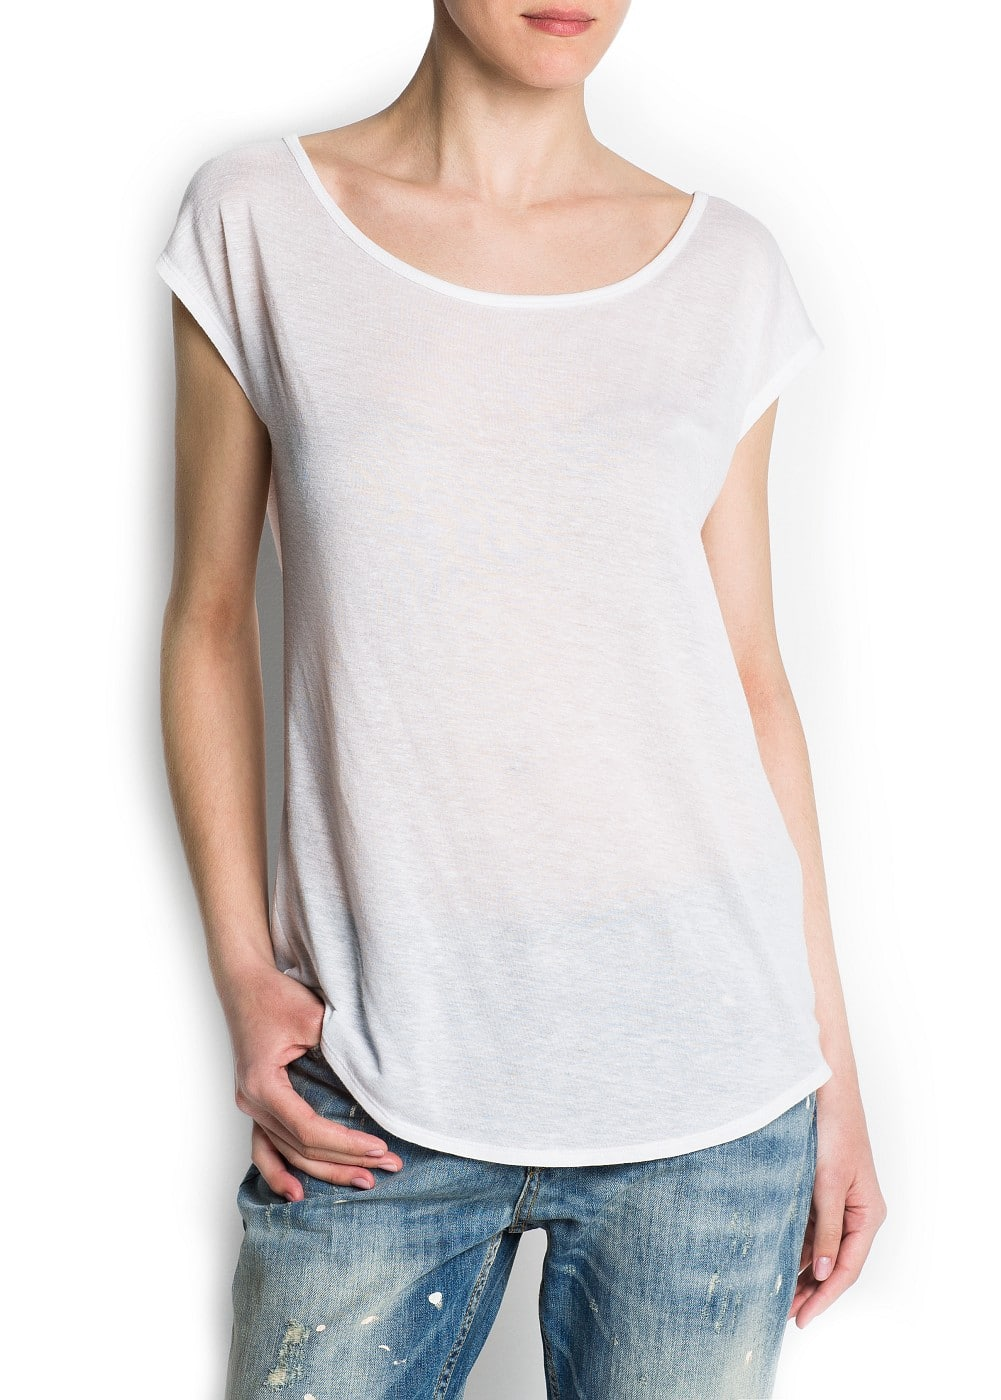 Oversized devoré cotton t-shirt